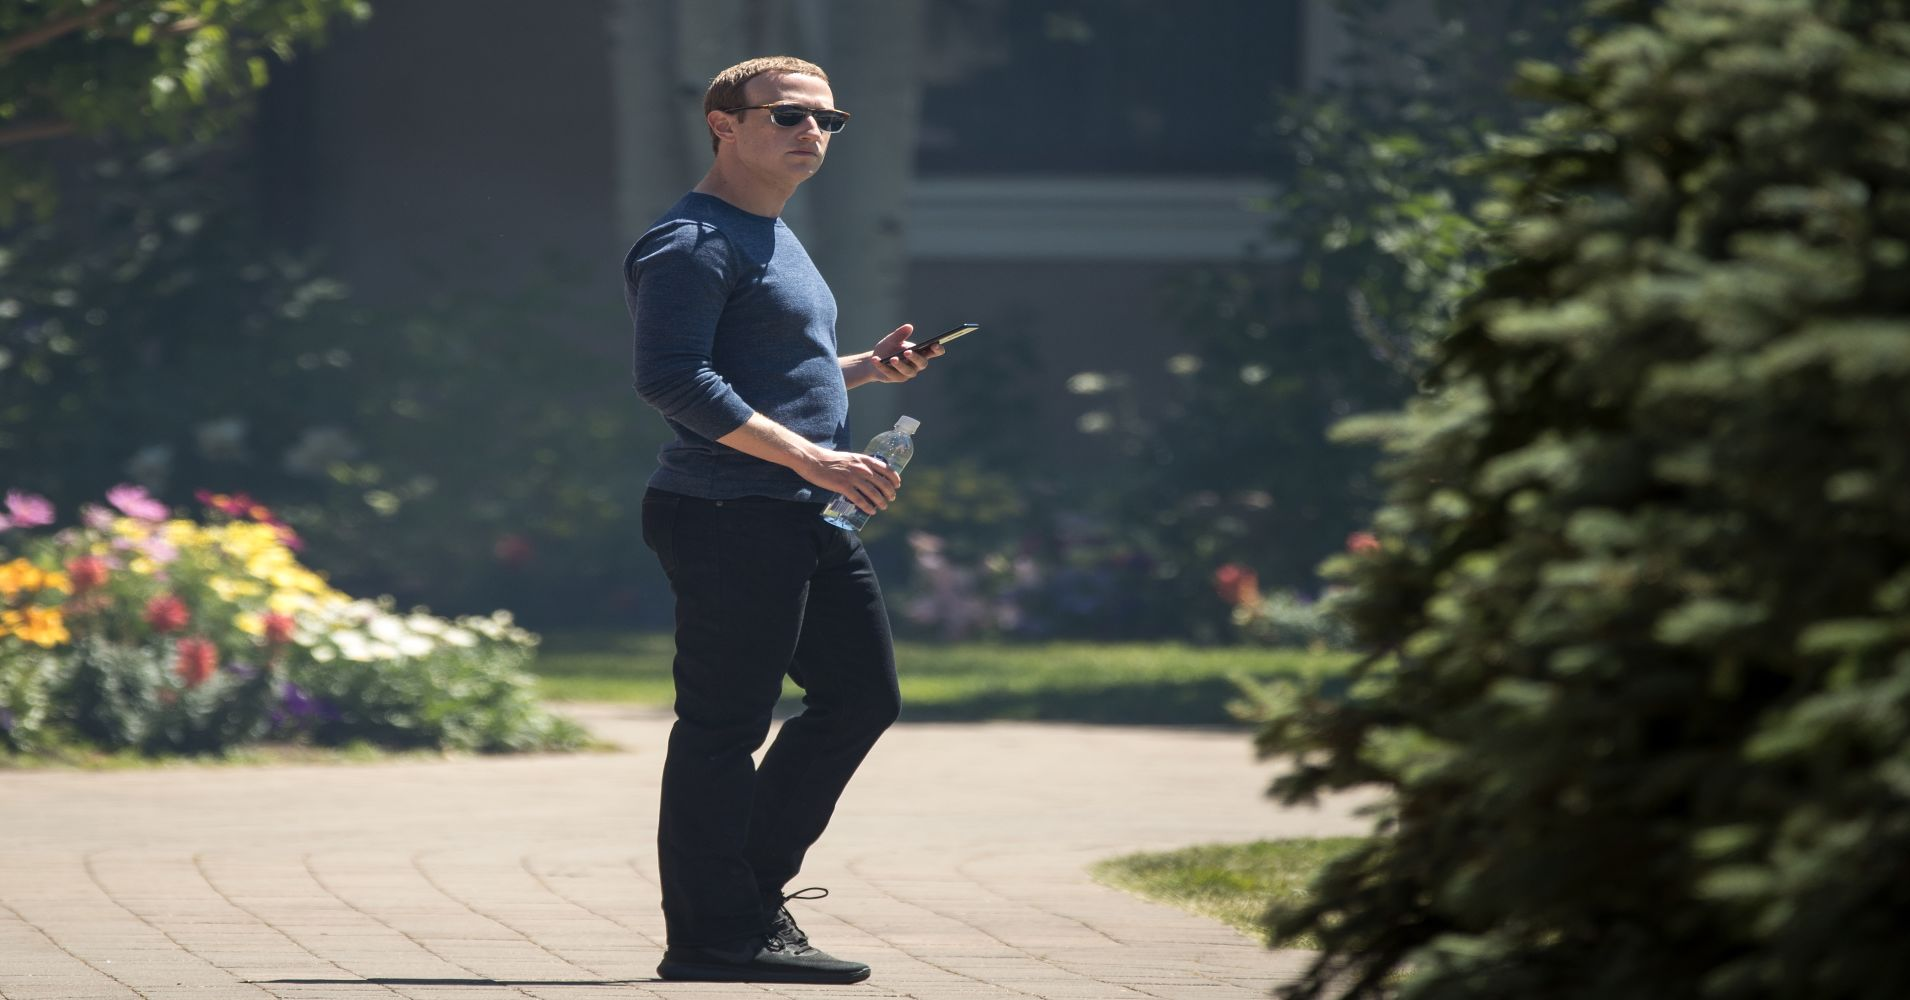 Mark Zuckerberg, chief executive officer of Facebook, attends the annual Allen & Company Sun Valley Conference, July 13, 2018 in Sun Valley, Idaho.